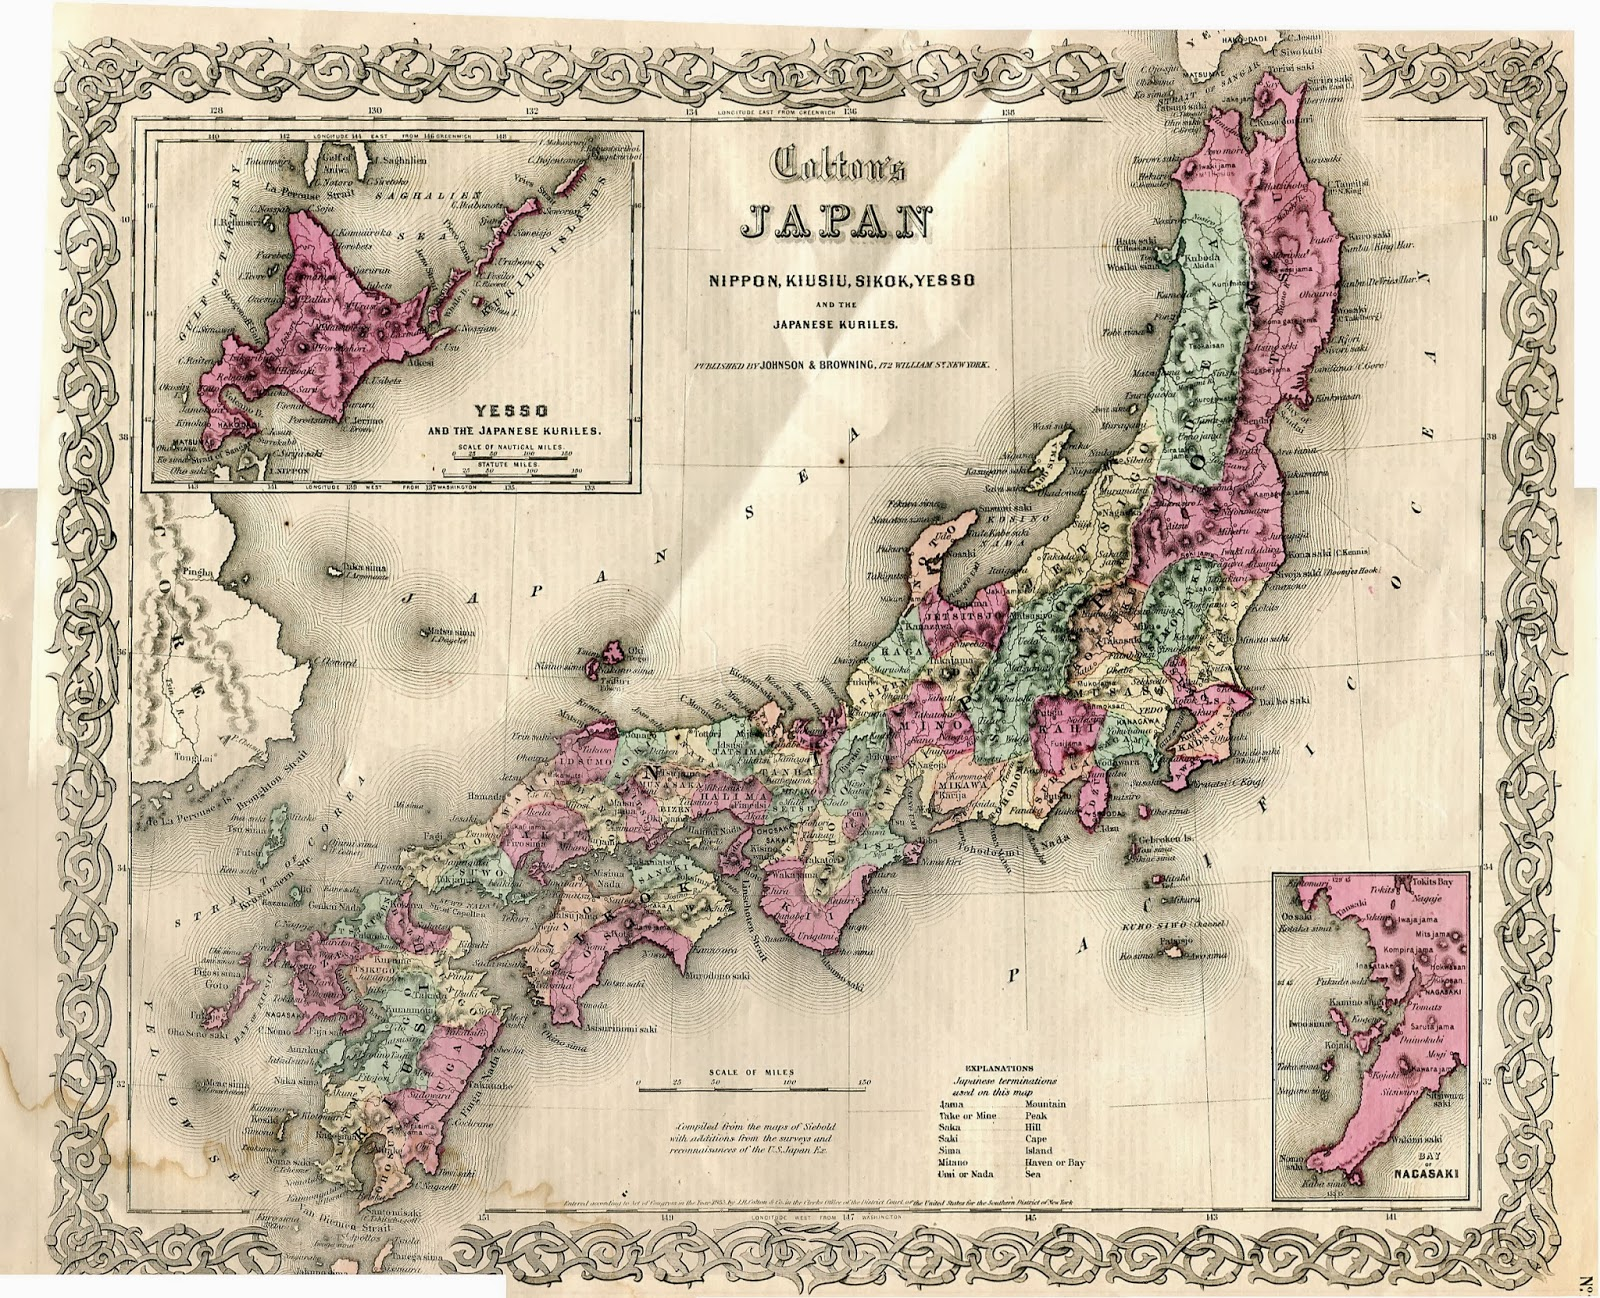 Japan its a wonderful rife 1853 map of japan 1853 map of japan gumiabroncs Images